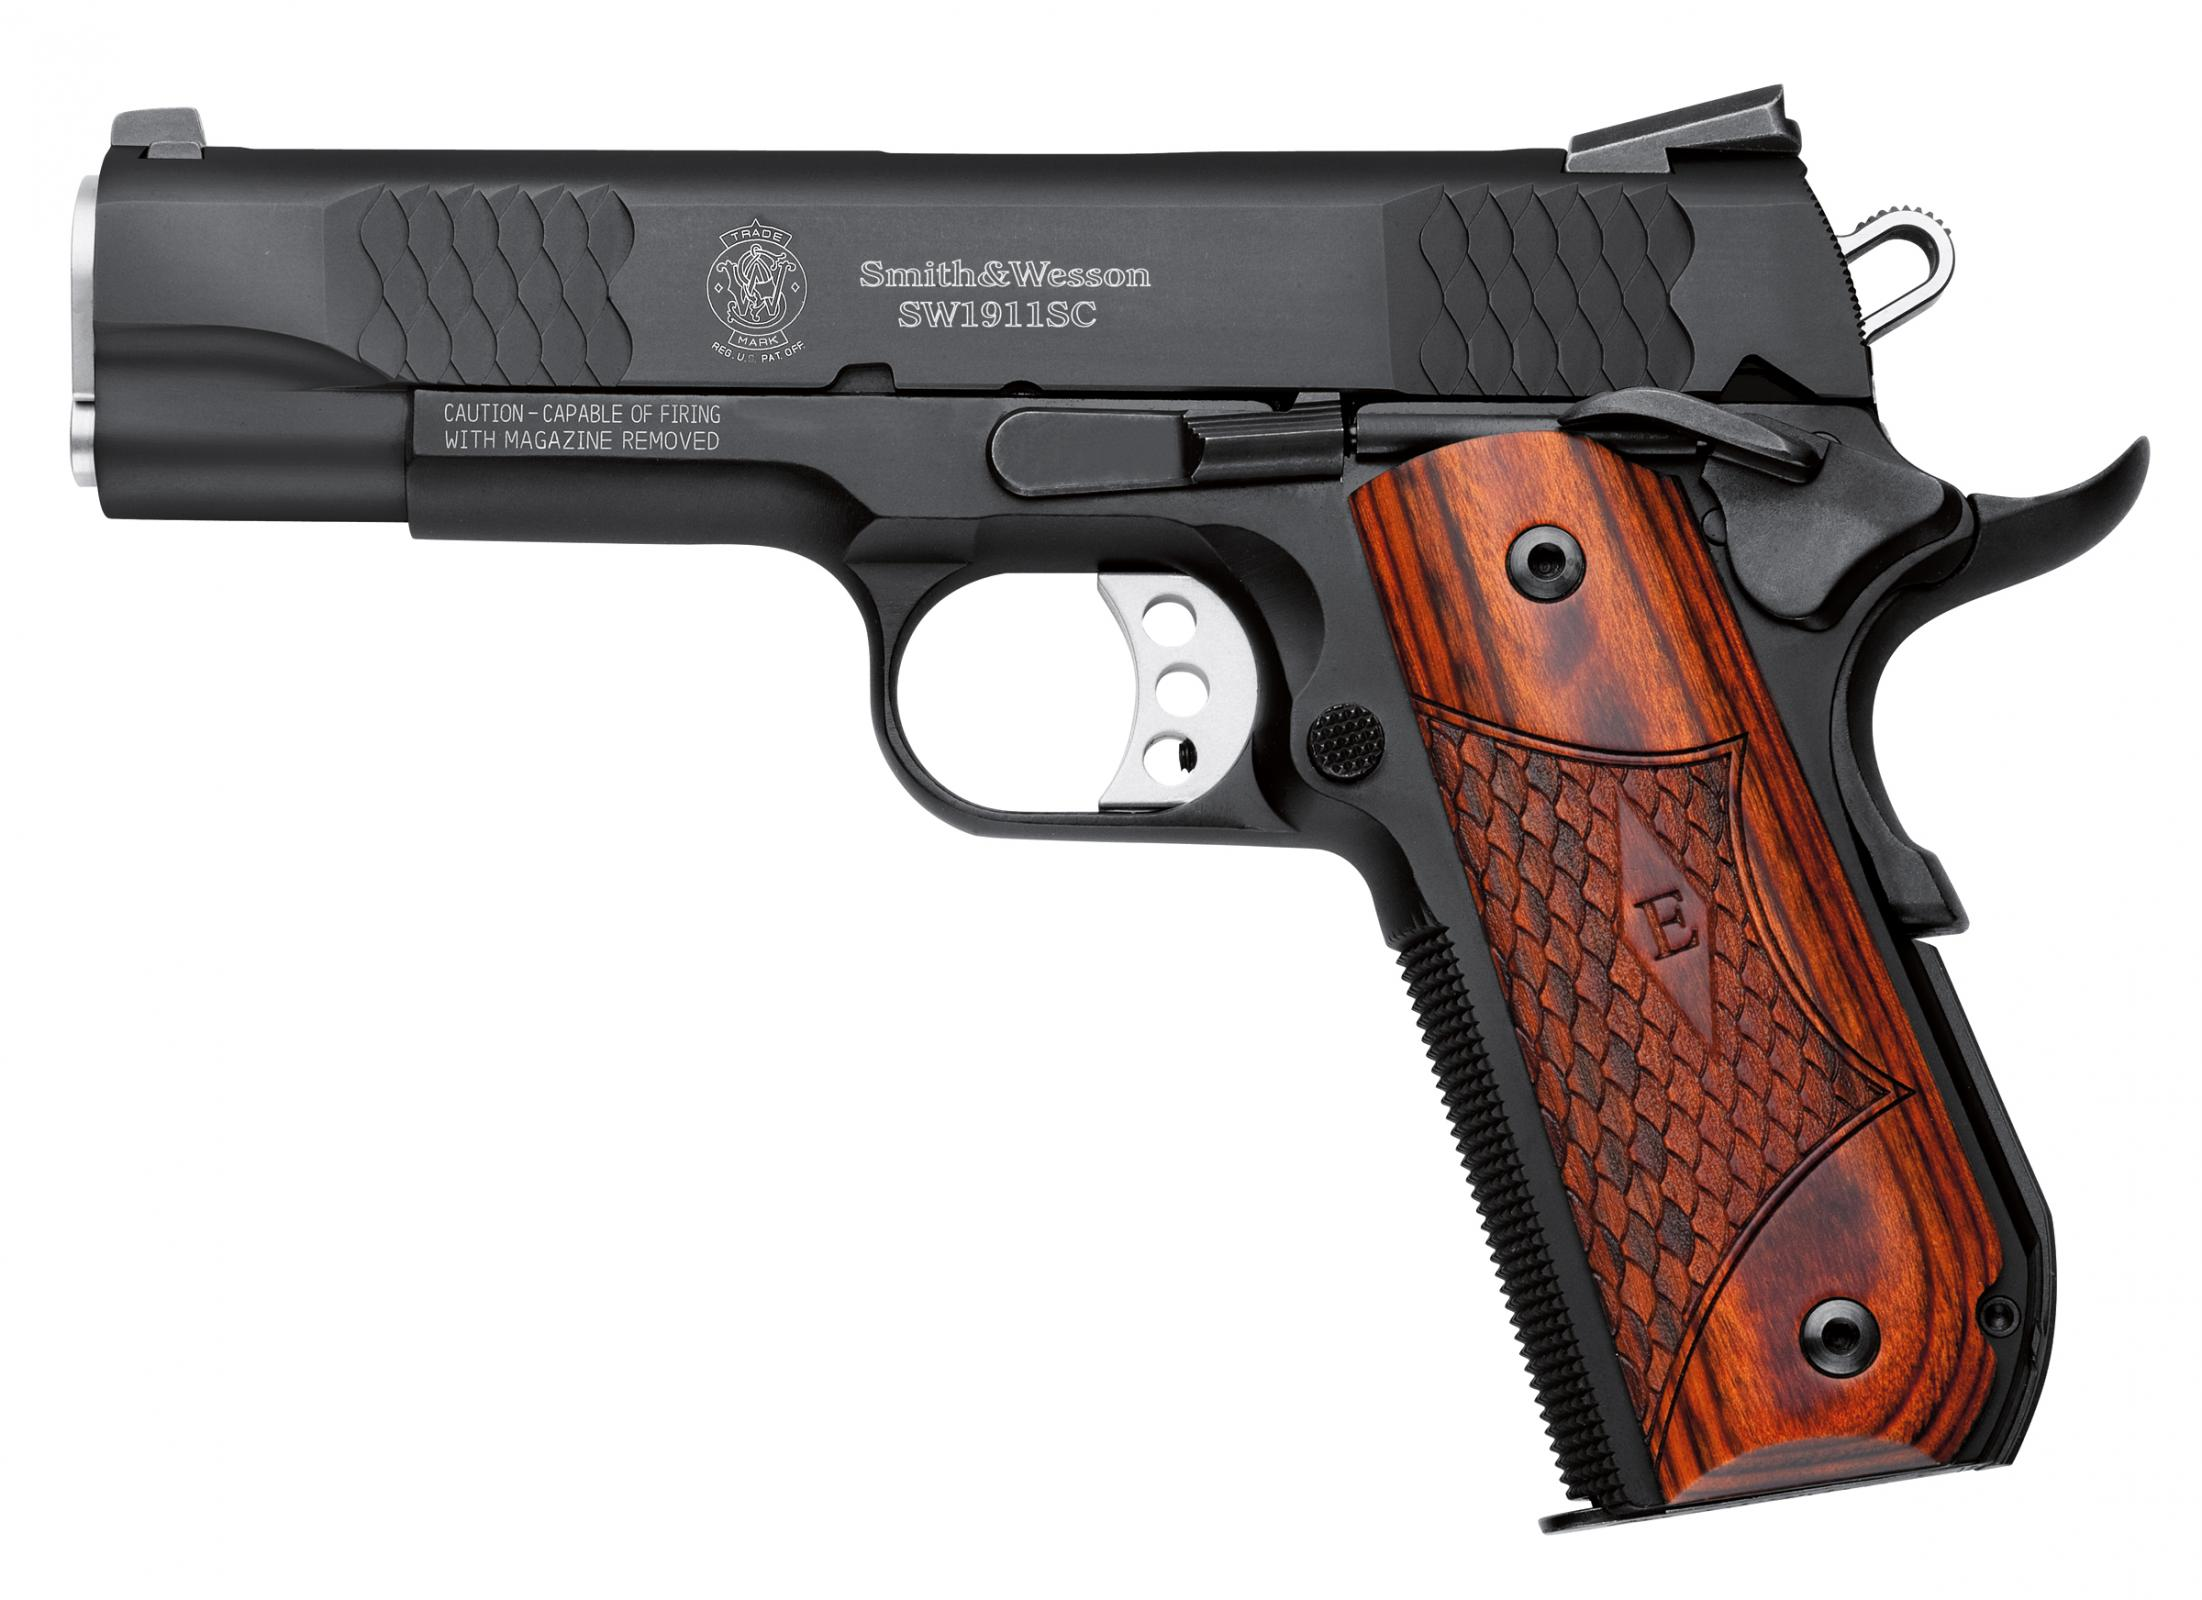 Smith and Wesson SW1911SC 45 ACP